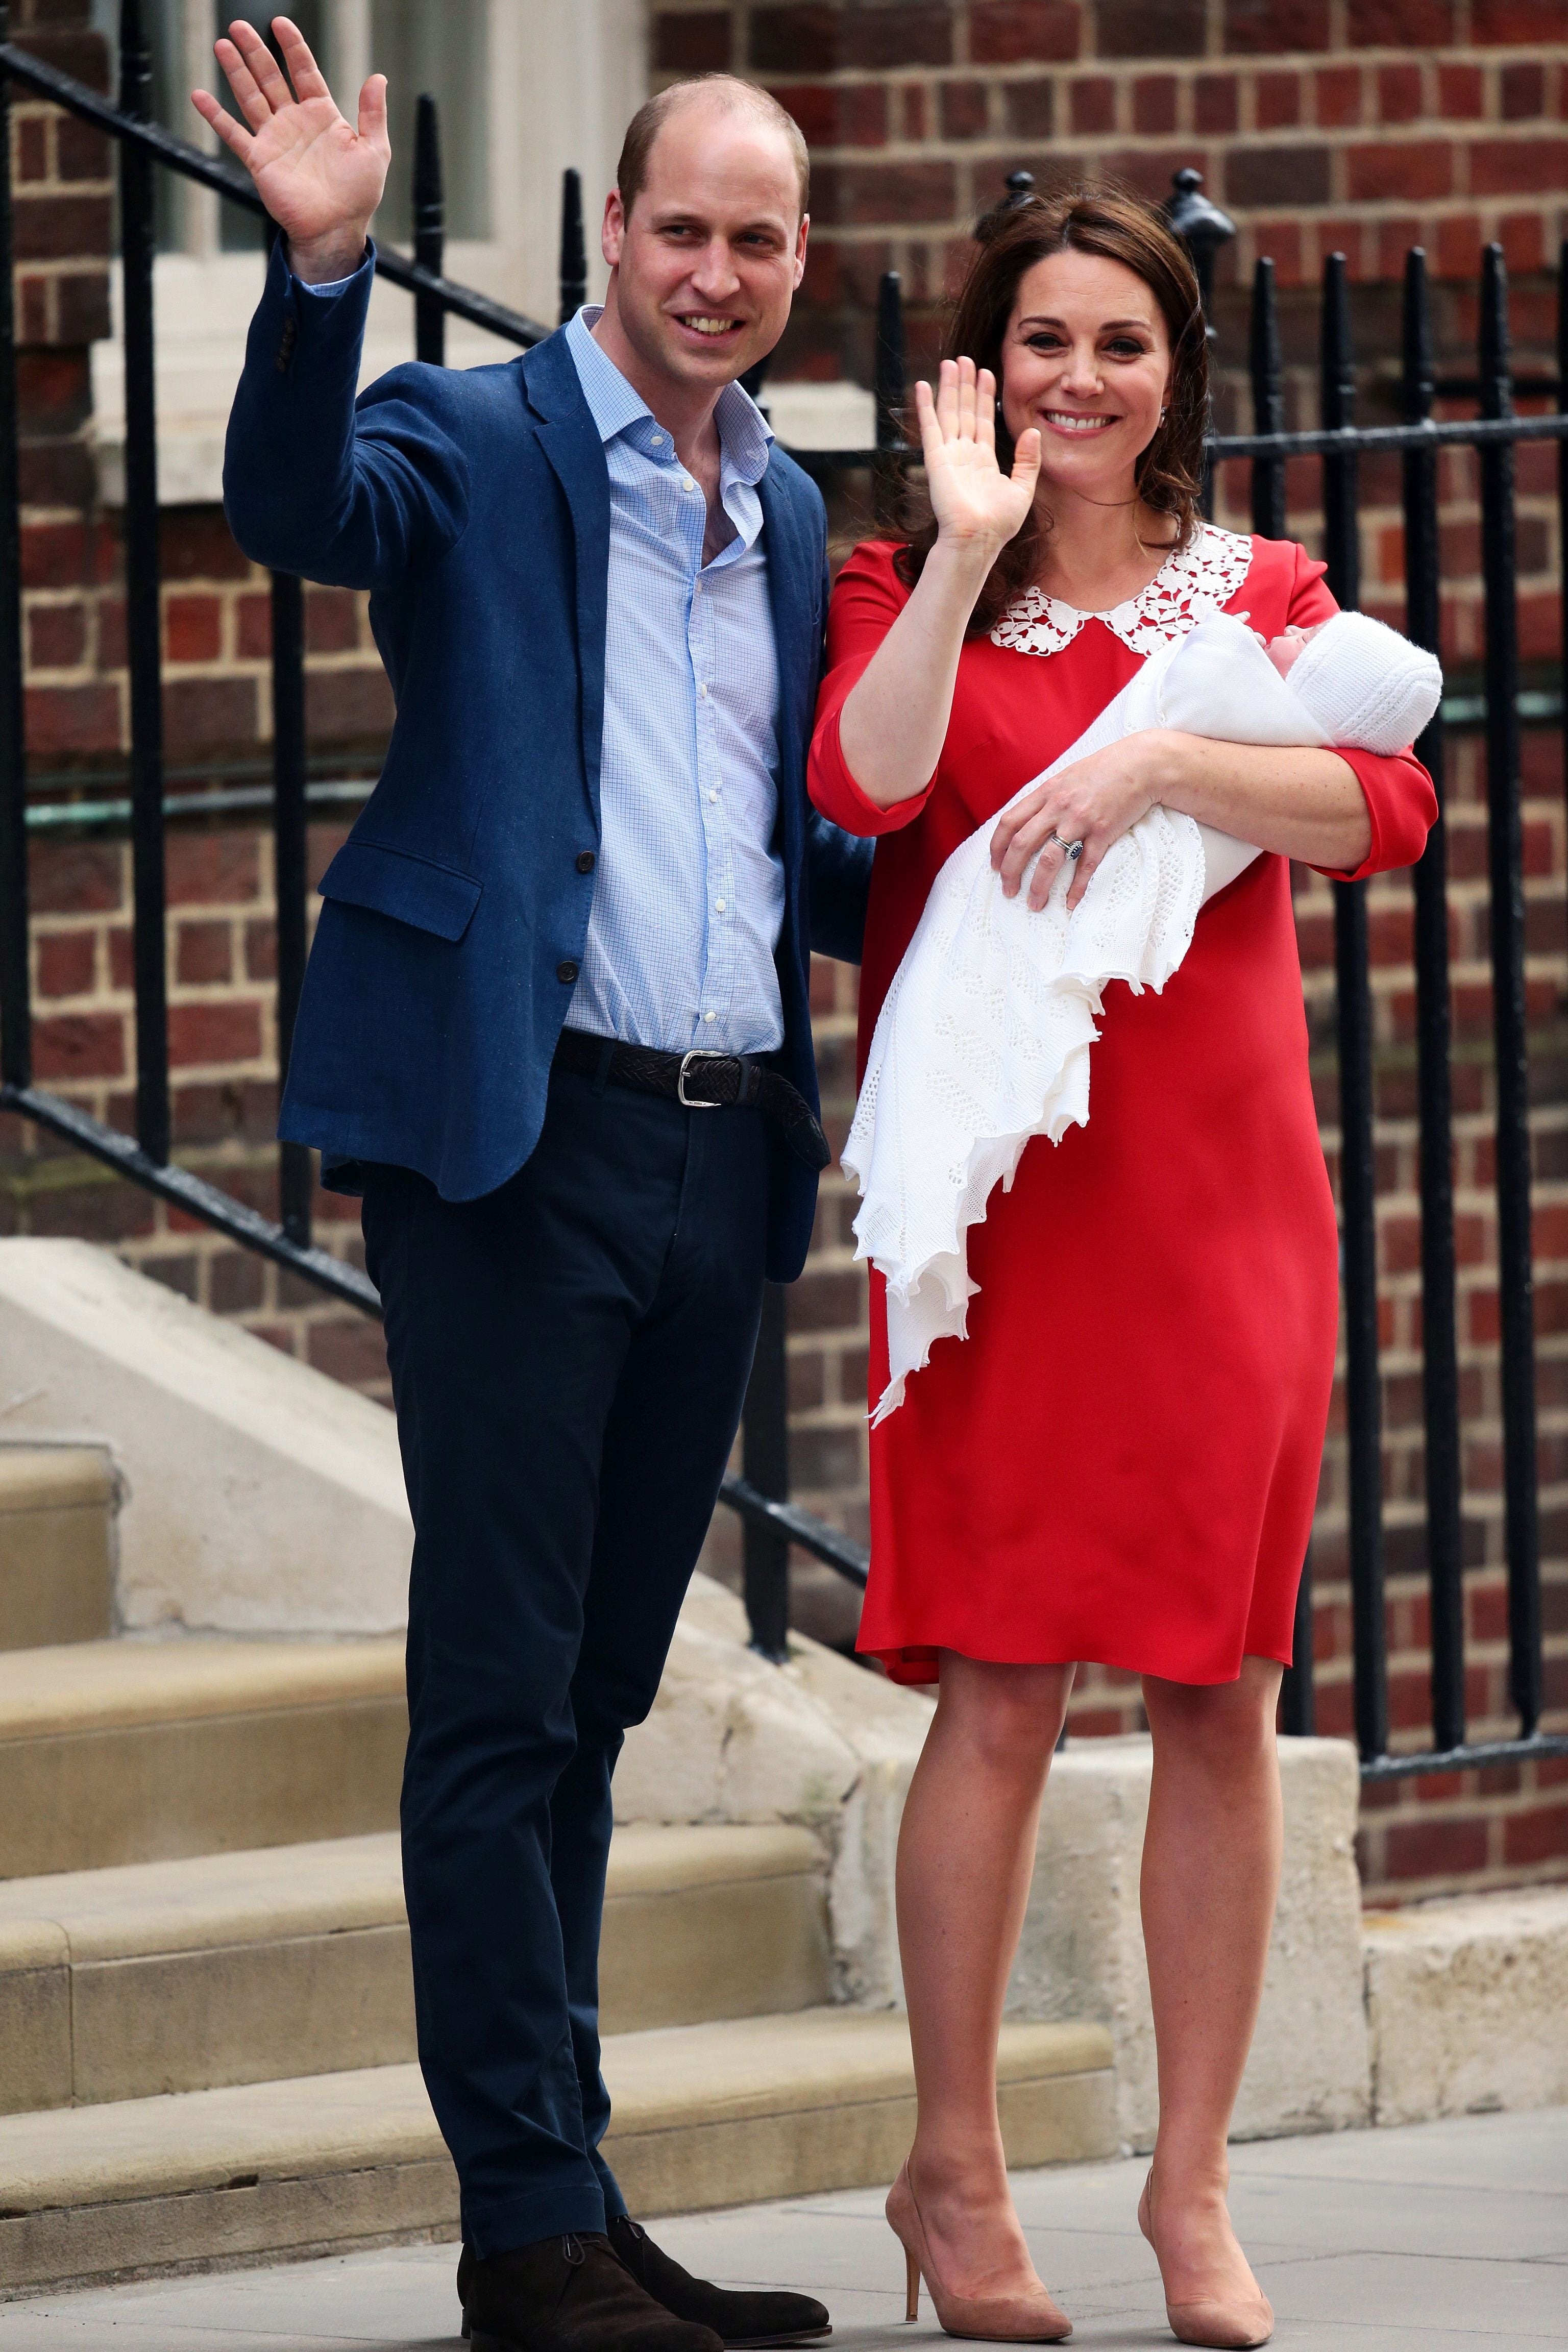 f8ad3cd0f1ee1 Kate Middleton Channels Princess Diana During Royal Baby No. 3 Introduction  | Entertainment Tonight